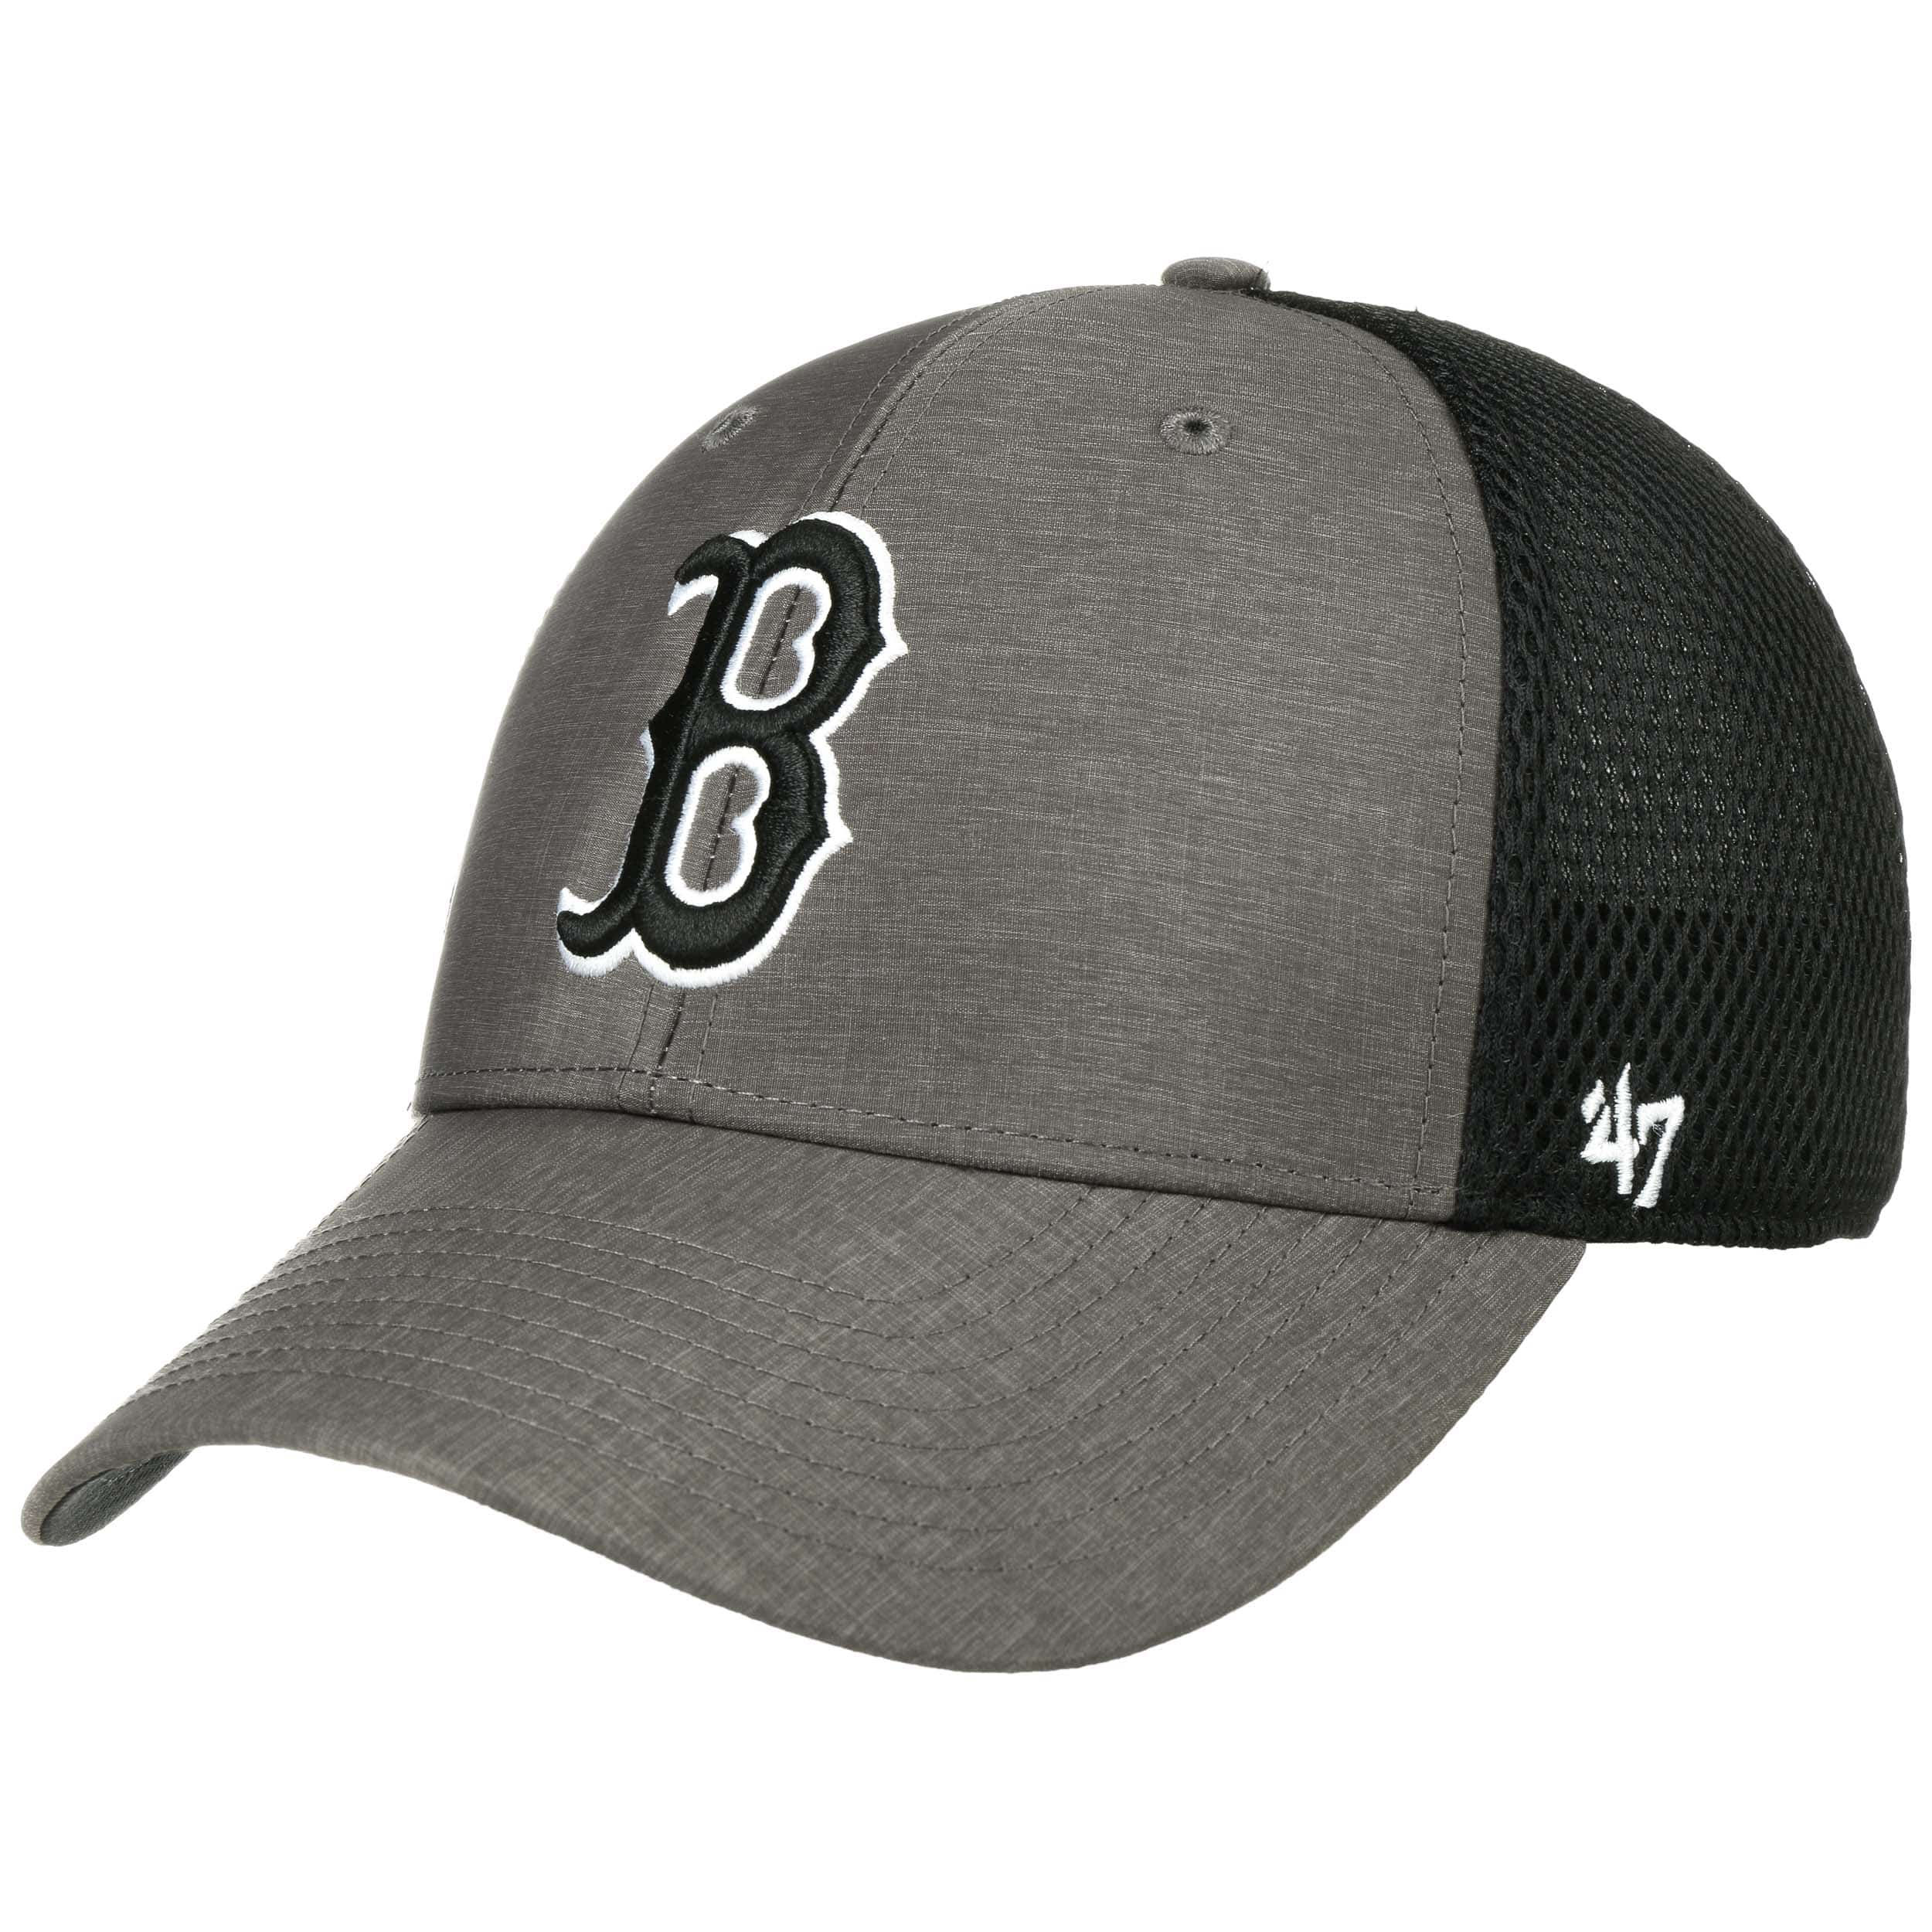 b56d5fe841 Grim Red Sox Trucker Cap by 47 Brand